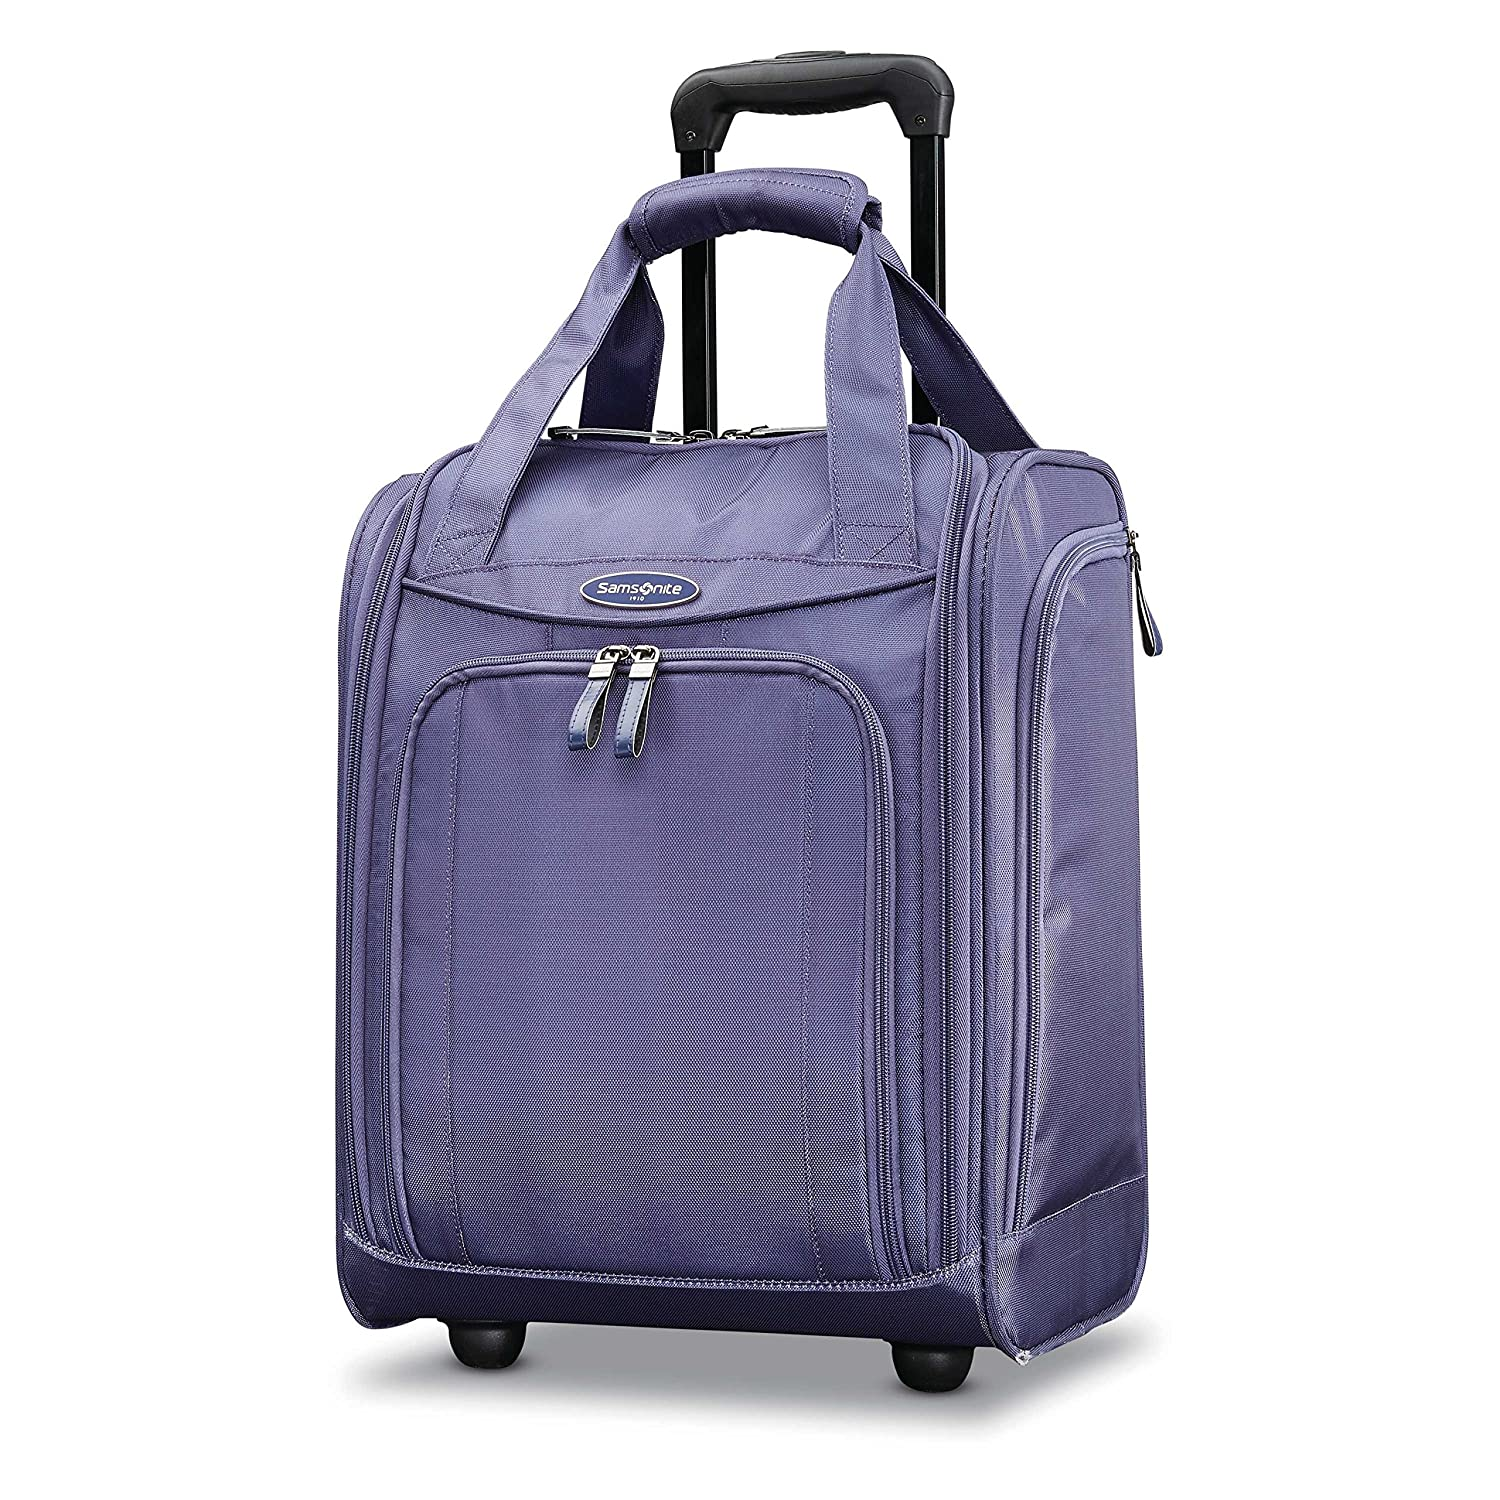 Samsonite Large Wheeled Underseater, Fresh Pink Samsonite Accessories 55478-0508